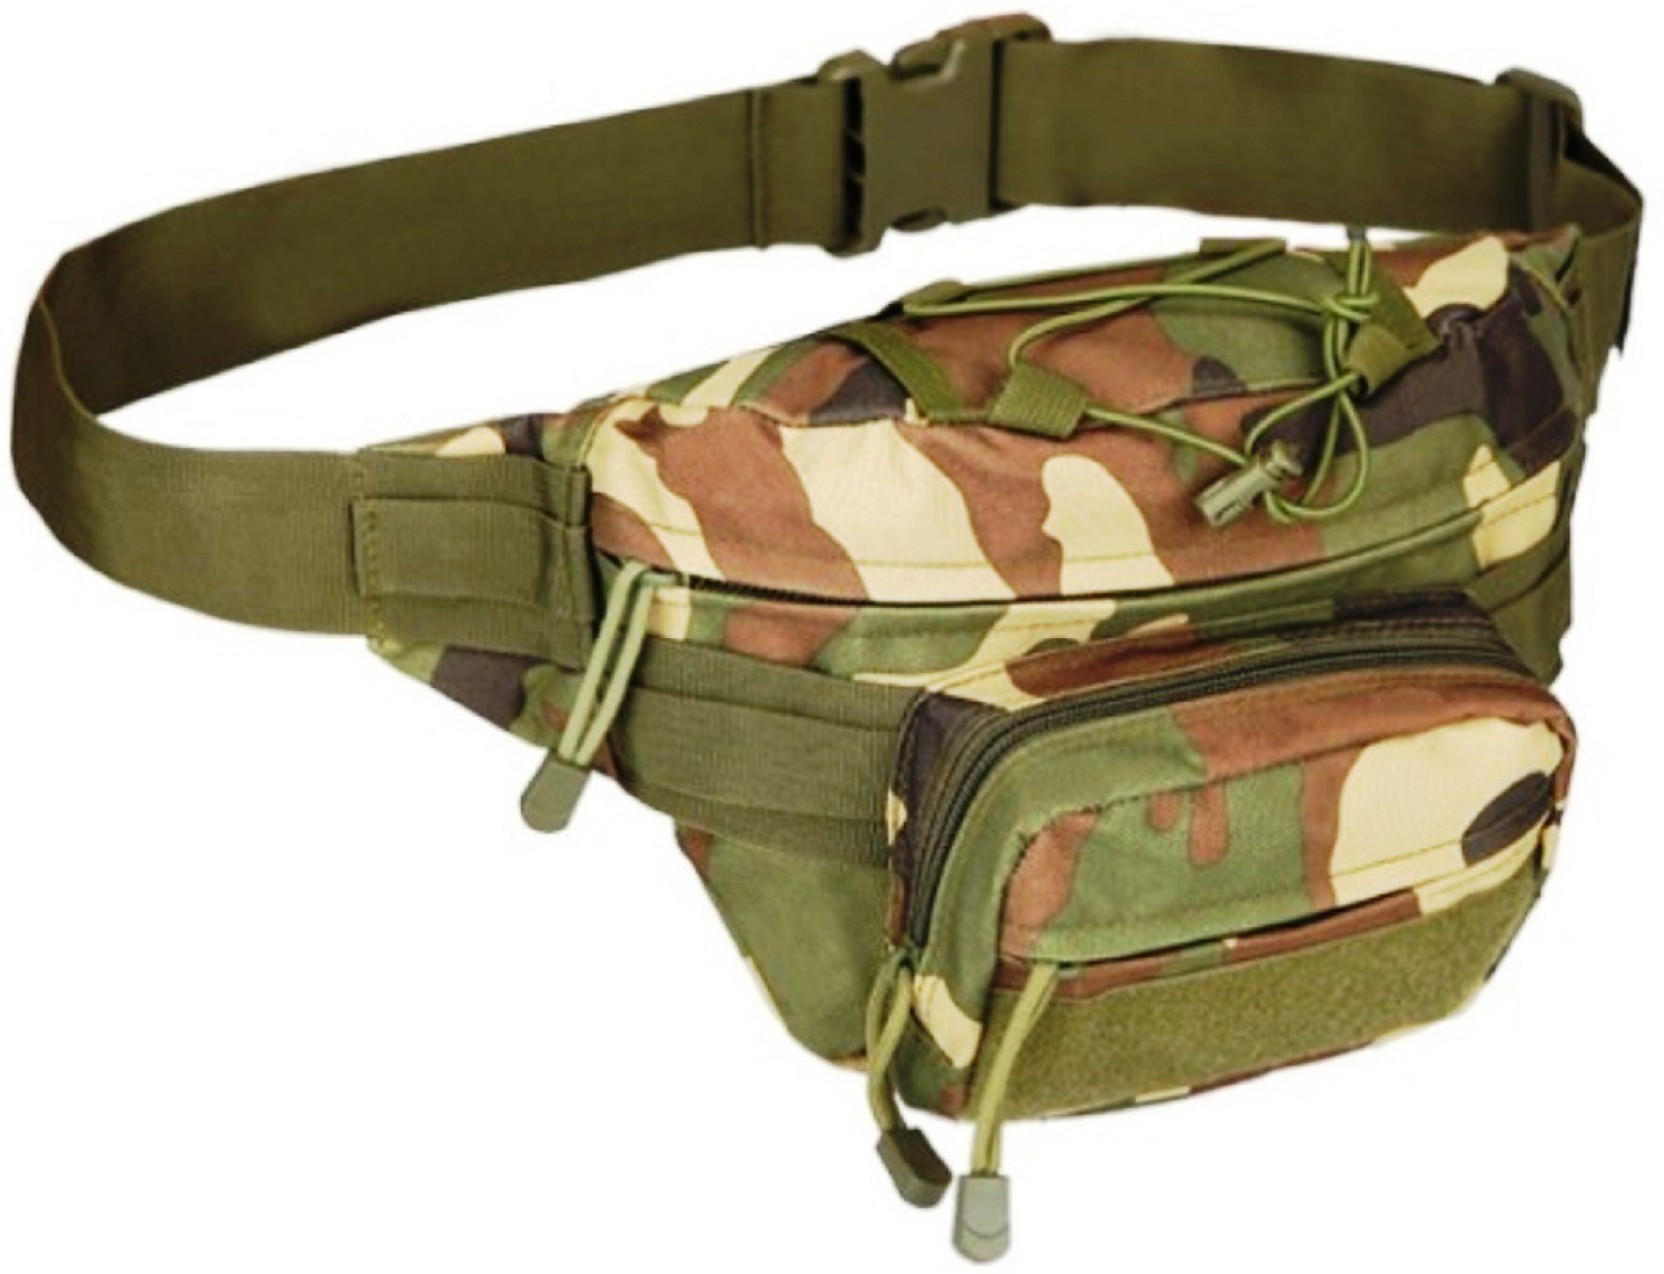 Unigear Military Fanny Pack Tactical Waist Bag Water Resistant Sarung Hp Pounch Army Home